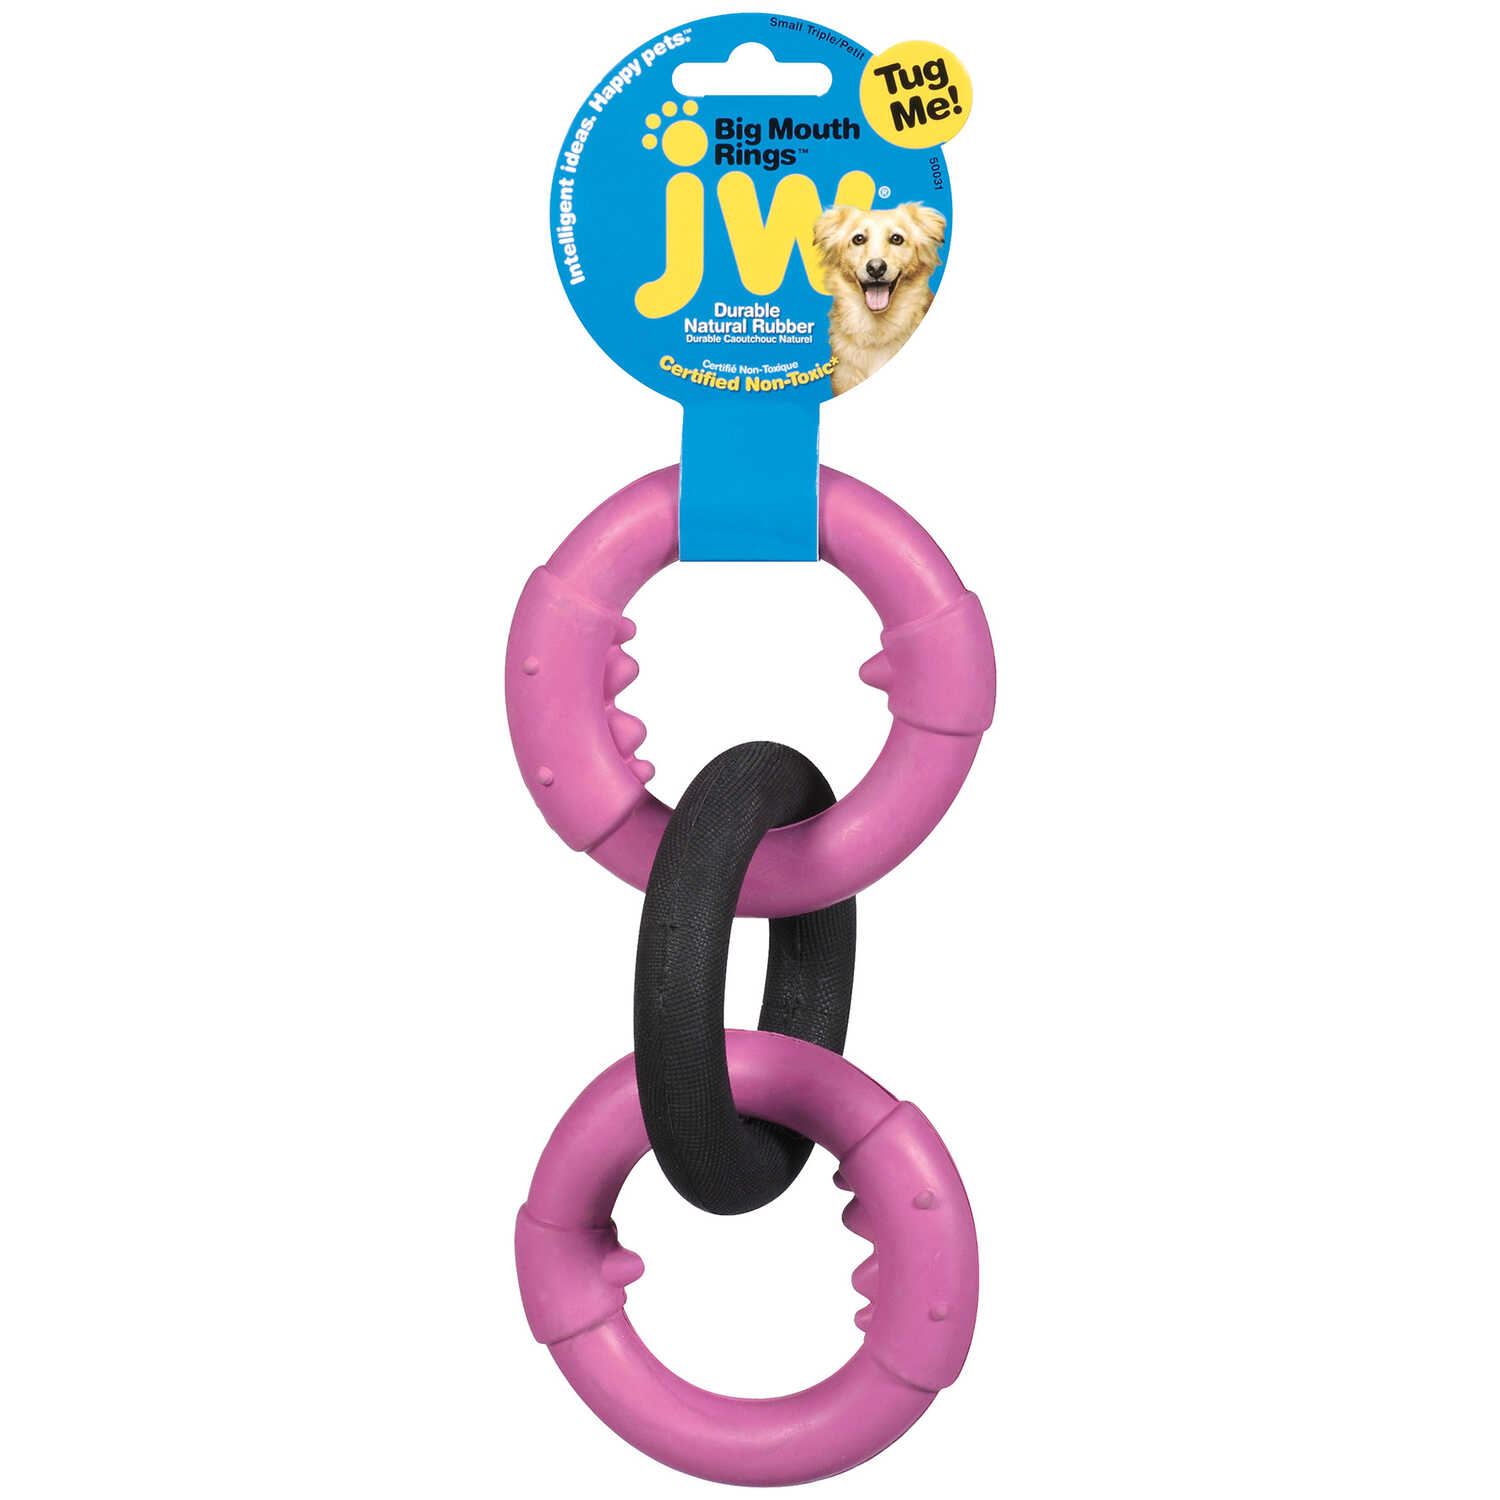 JW Pet  Black/Pink  Rubber  Big Mouth Triple Chain Links  Small  Dog Tug Toy